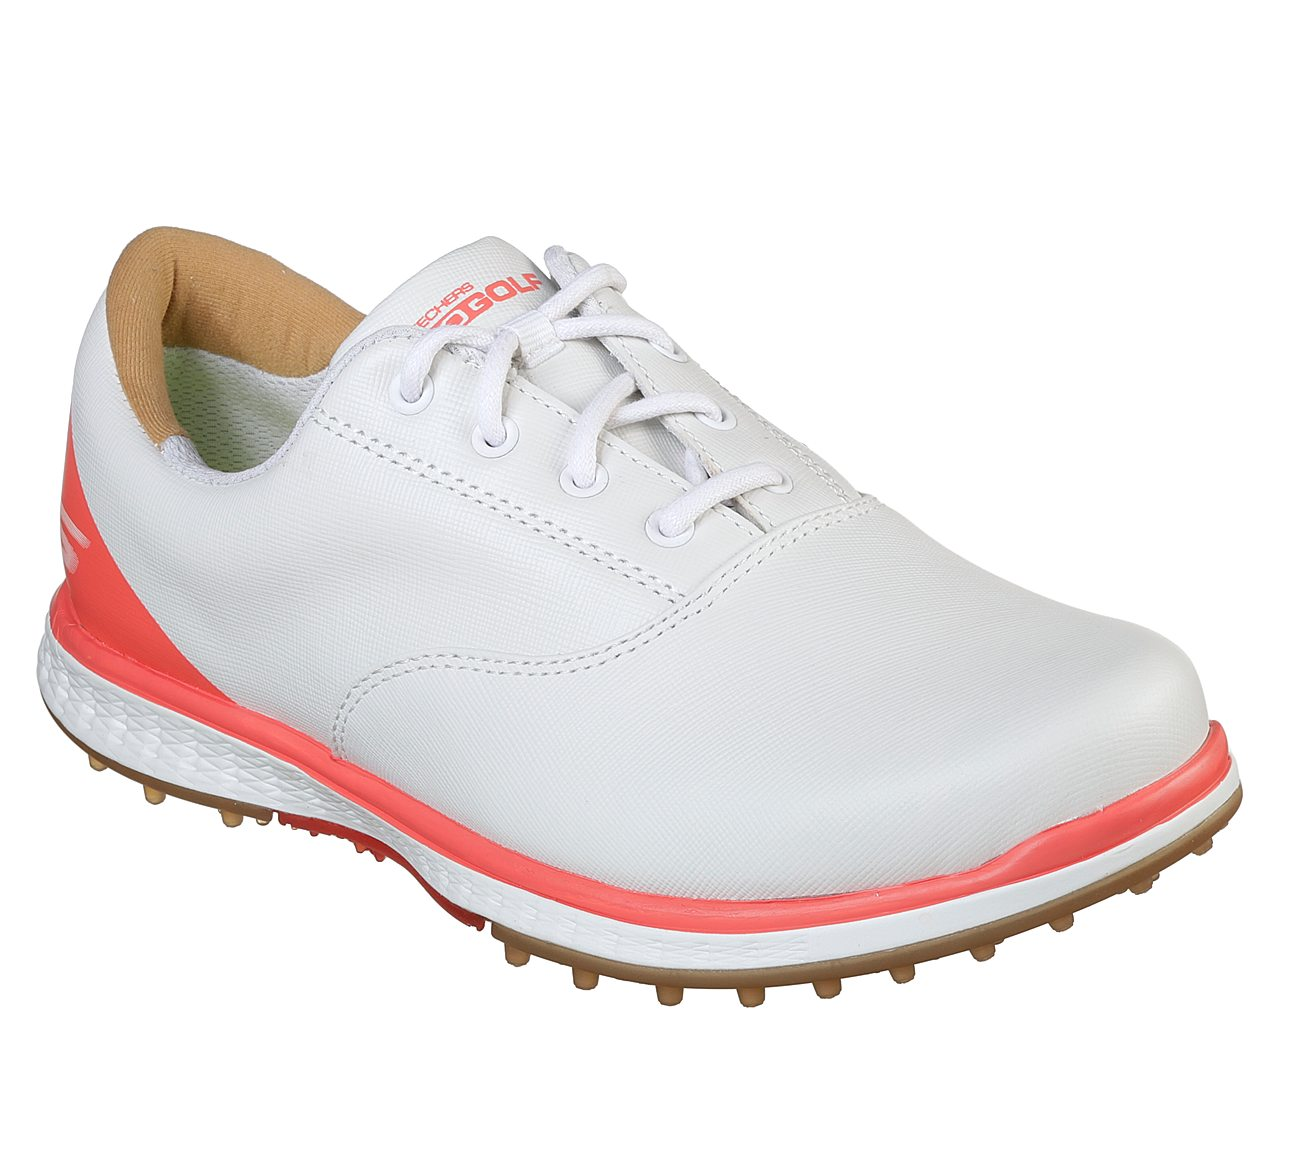 stores that carry skechers